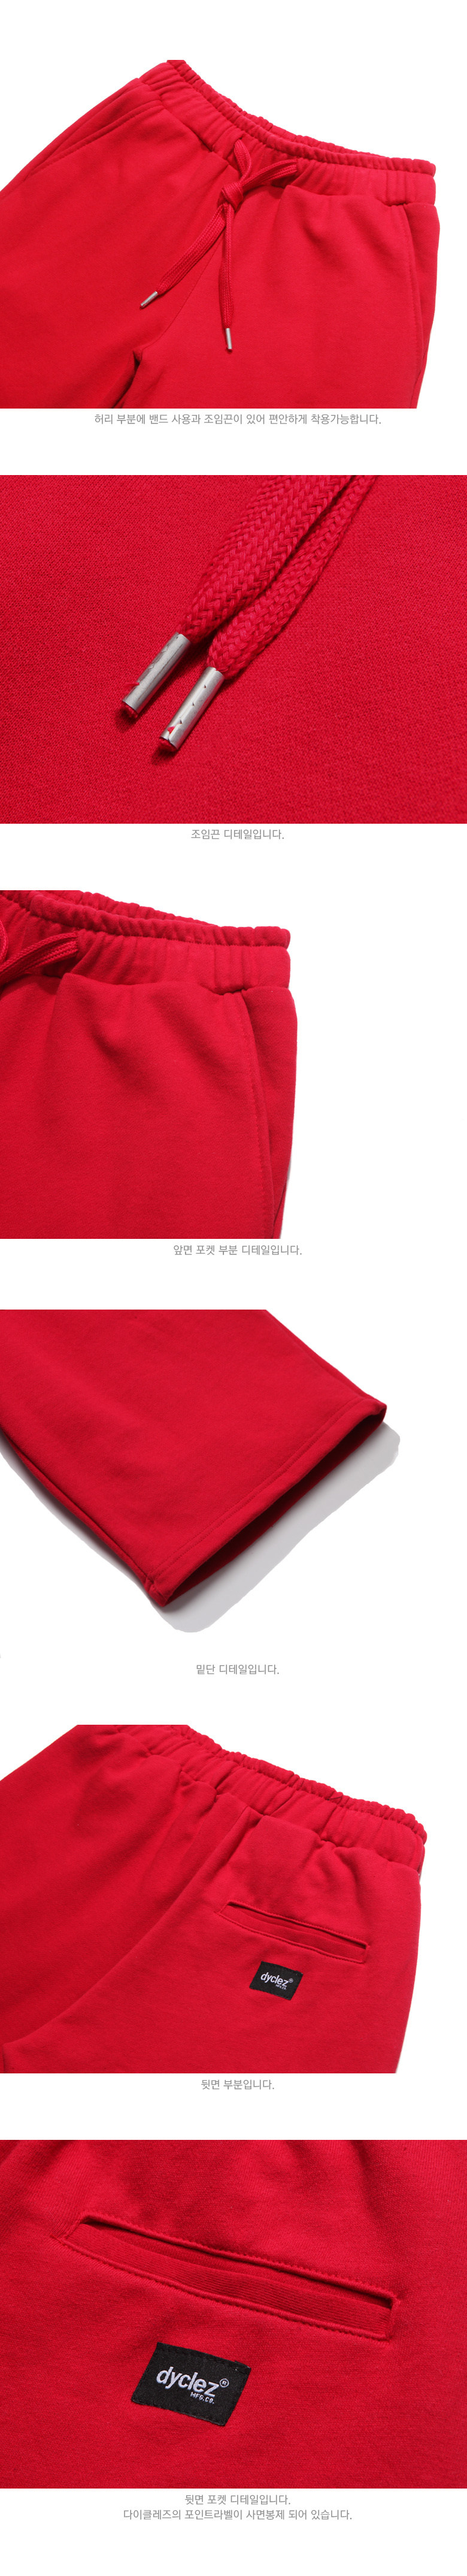 20180615_dy_classicjjuri_short_pants_detail_red_uk_02.jpg